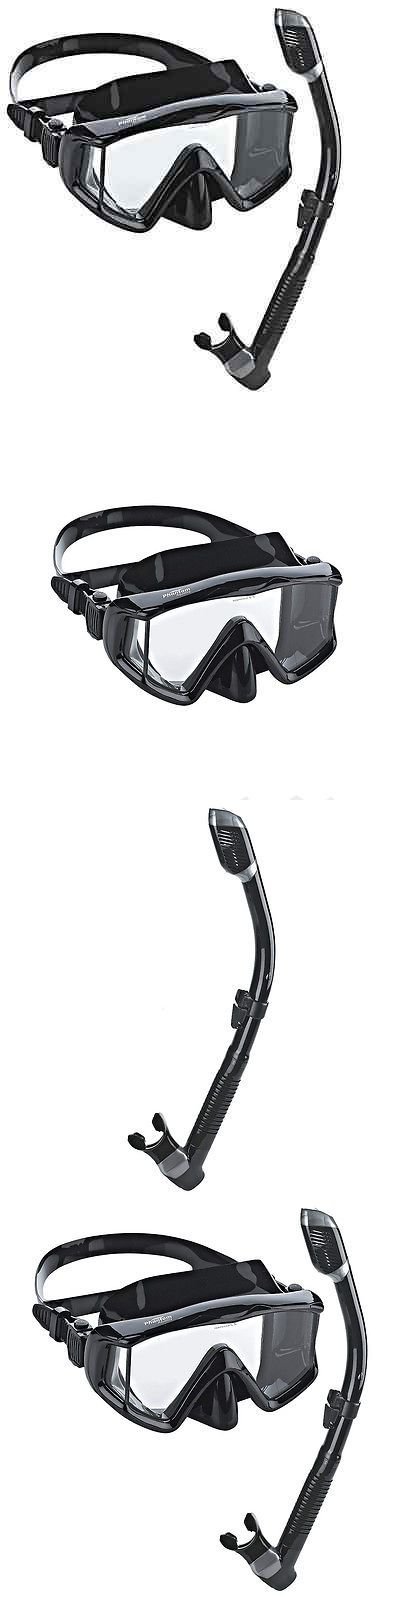 Snorkels and Sets 71162: Phantom Snorkeling Scuba Mask Diving Dive Dry Snorkel Goggles Aquatics Black -> BUY IT NOW ONLY: $49.99 on eBay!